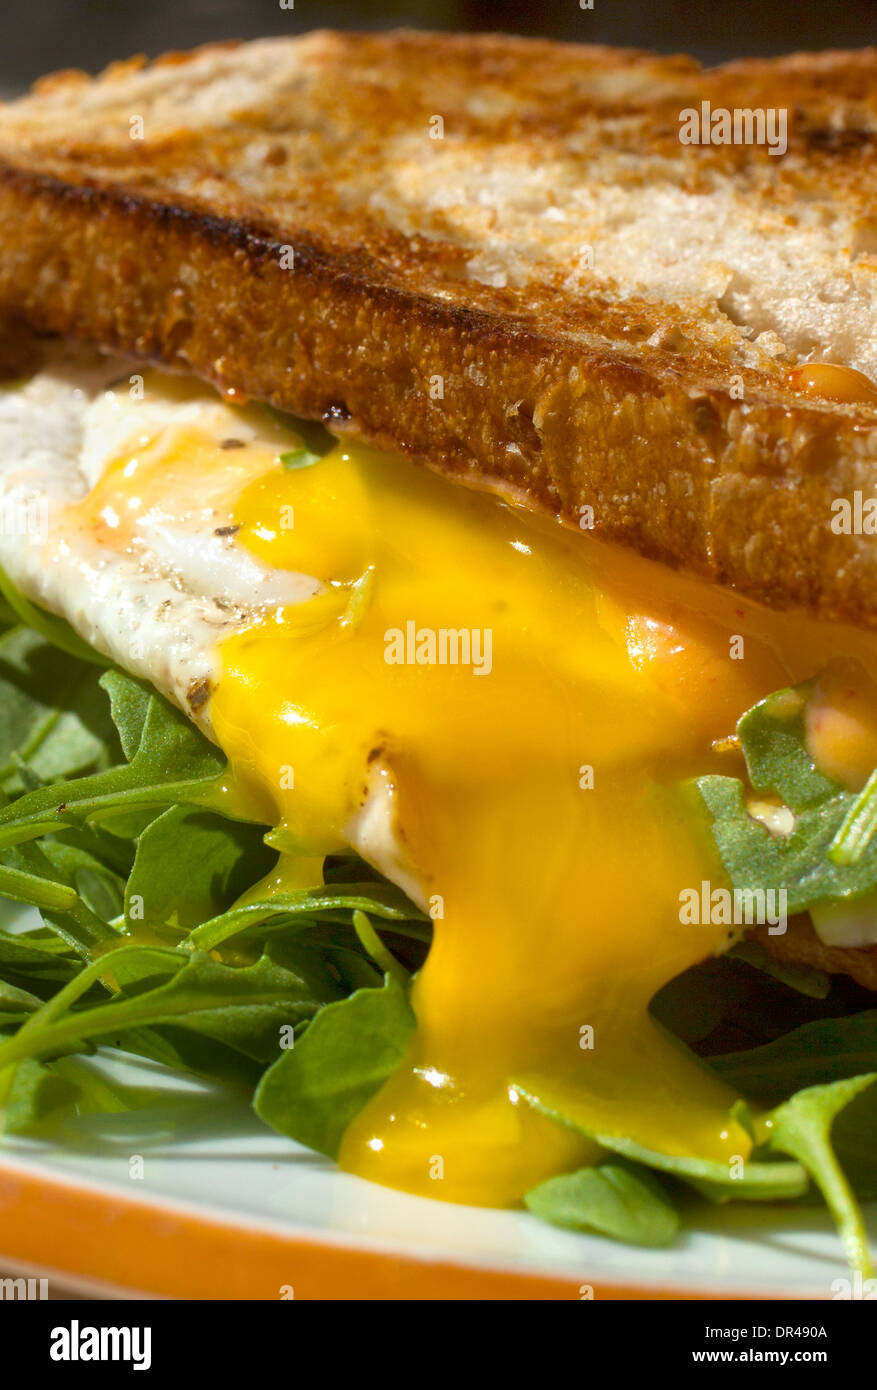 Runny egg breakfast sandwich - Stock Image